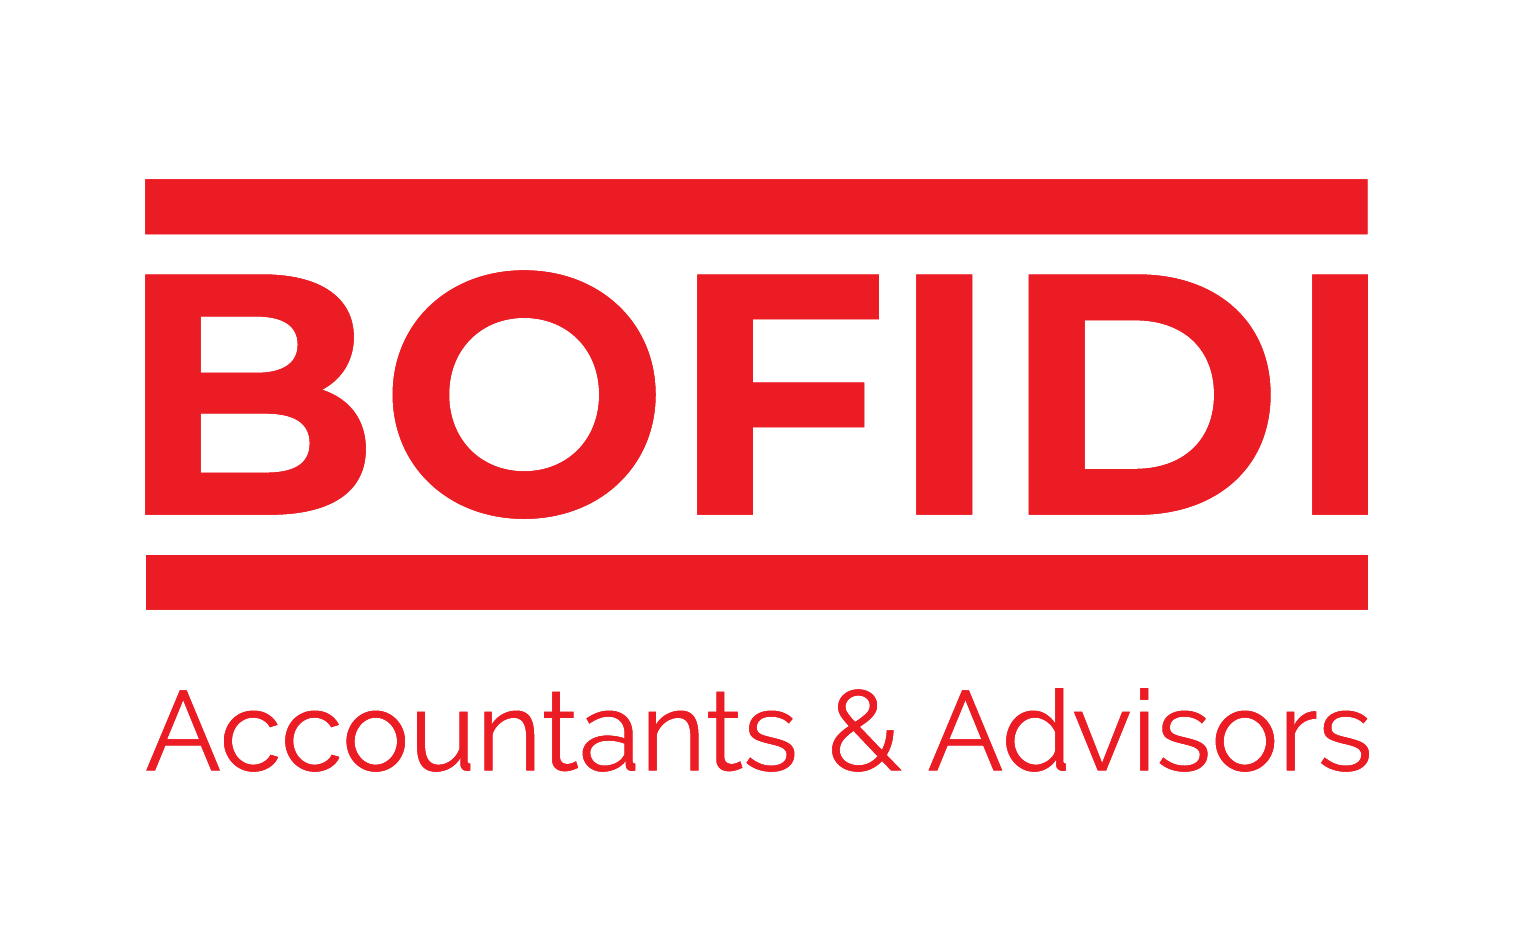 Bofidi Accountants & Advisors